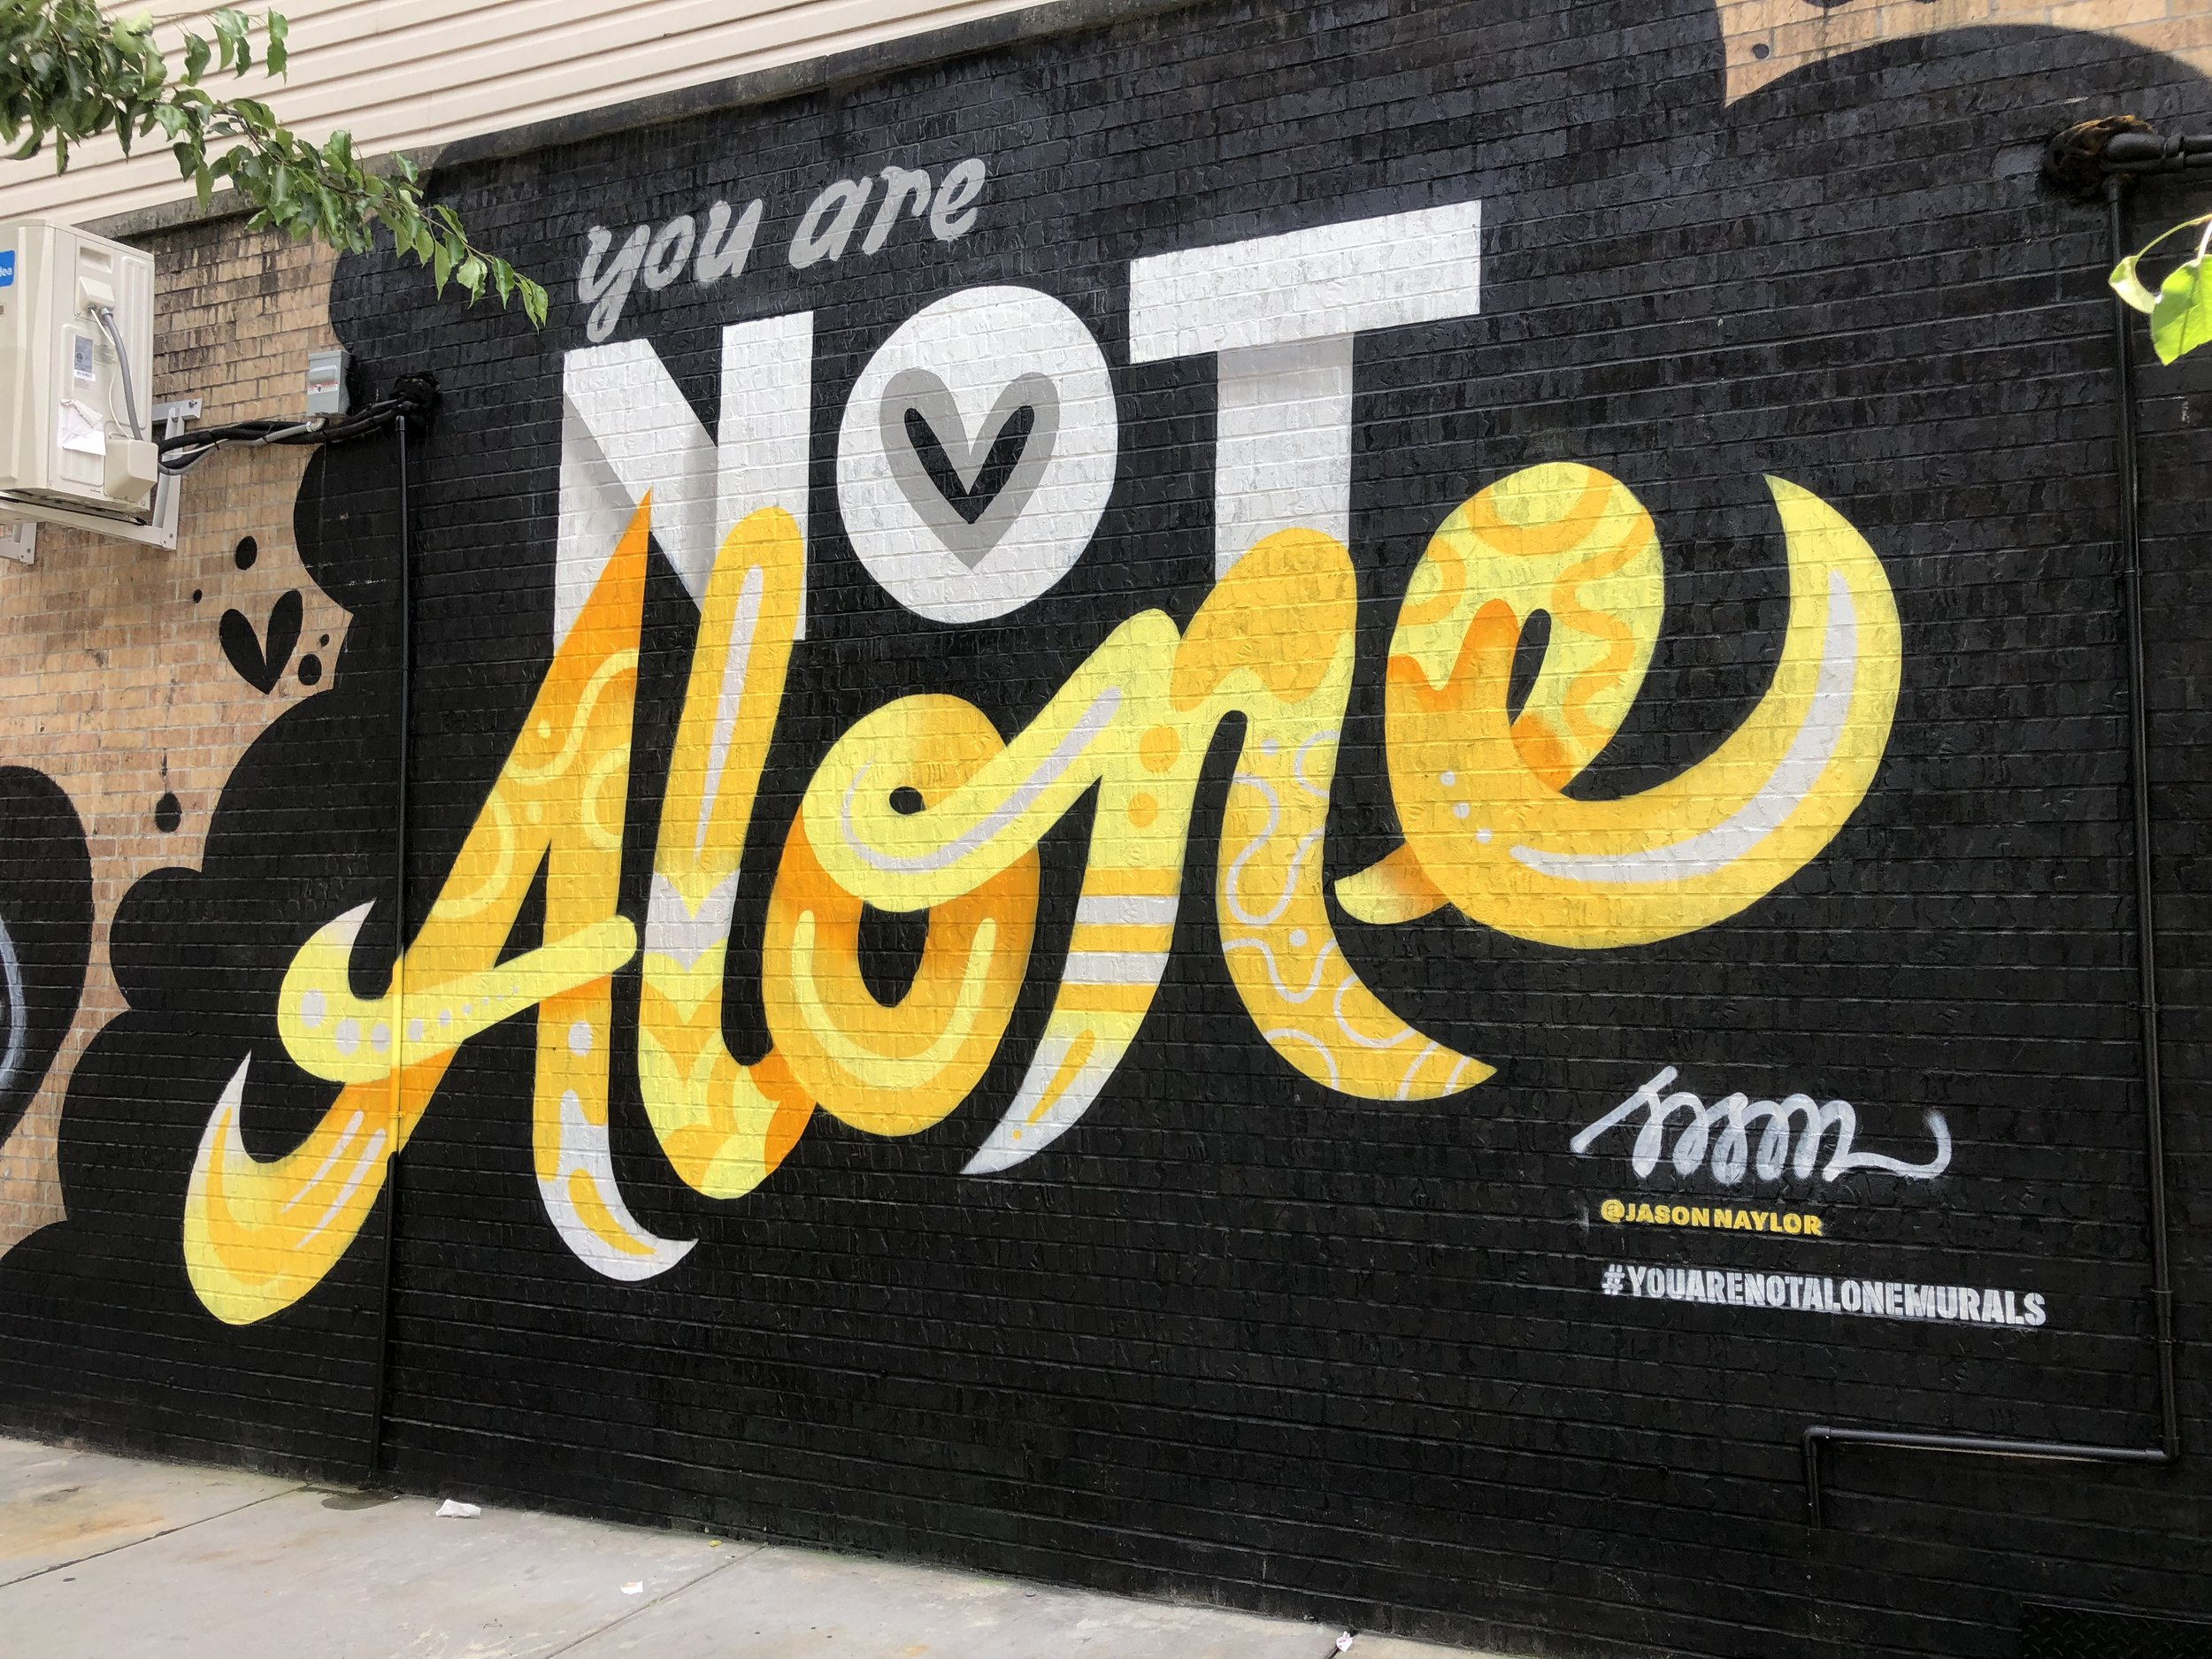 You Are Not Alone mural by Jason Naylor in Bushwick.